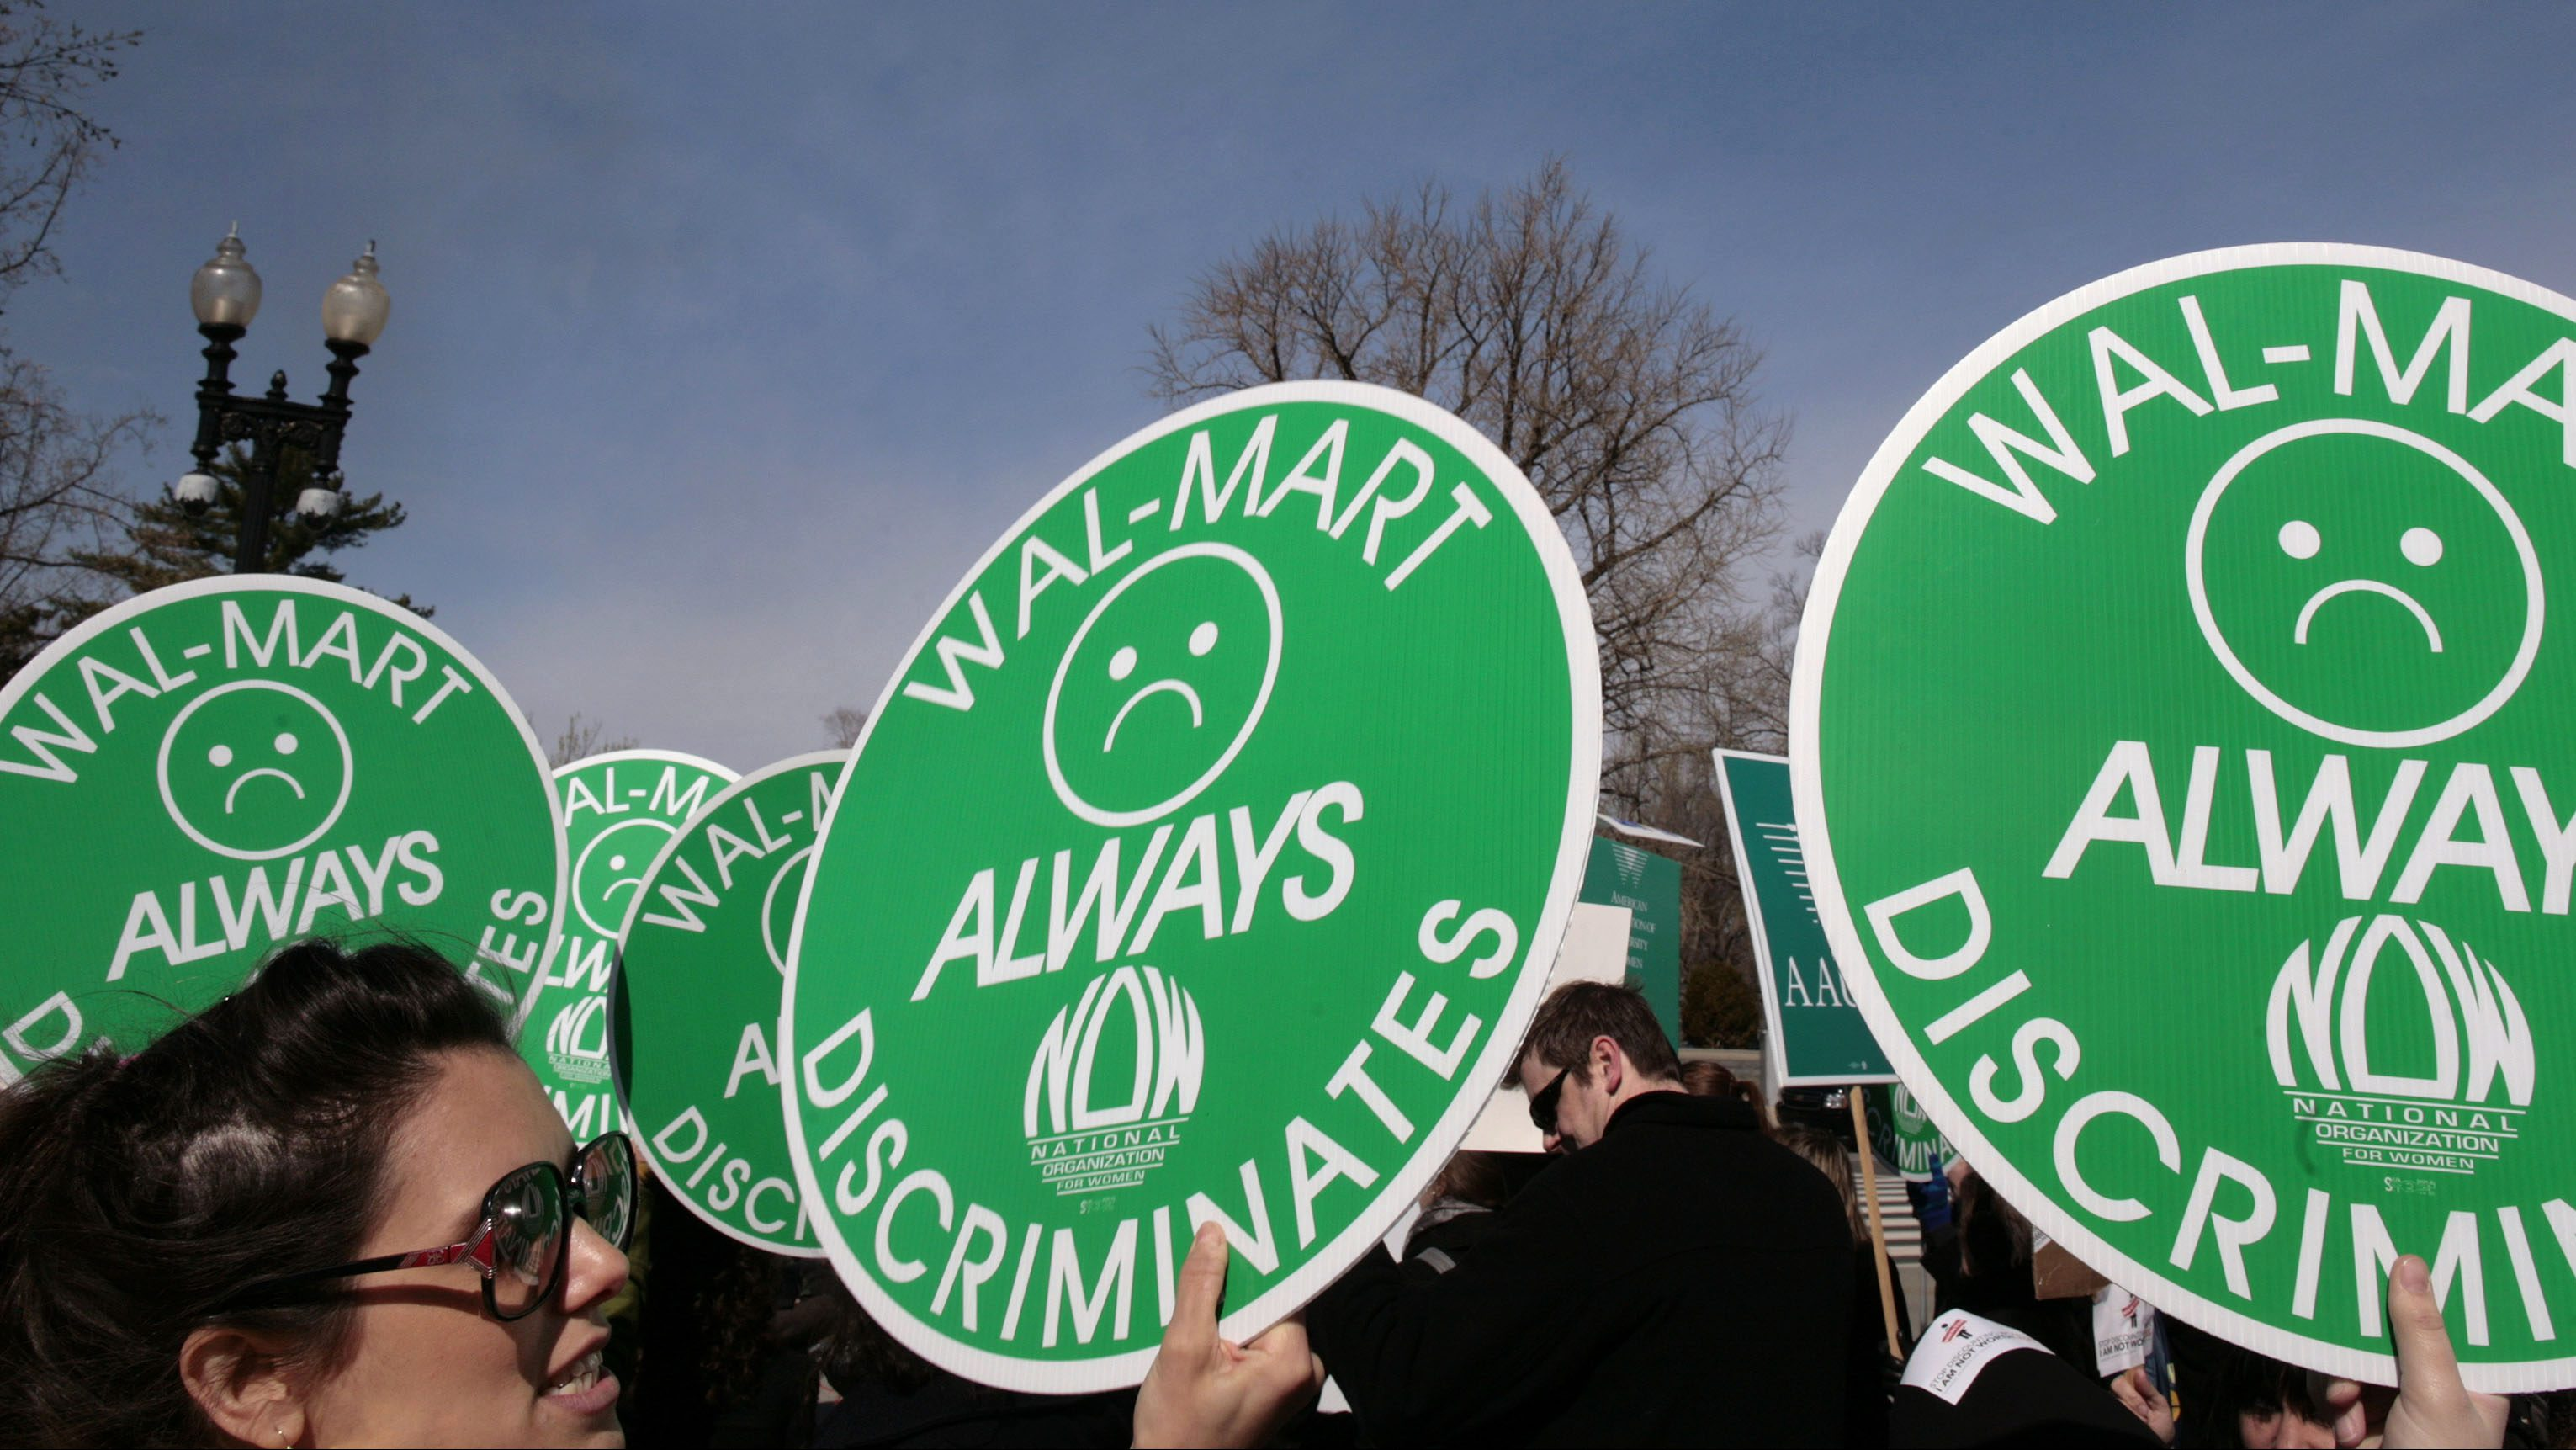 Women hold anti-walmart signs at supreme court case in 2011